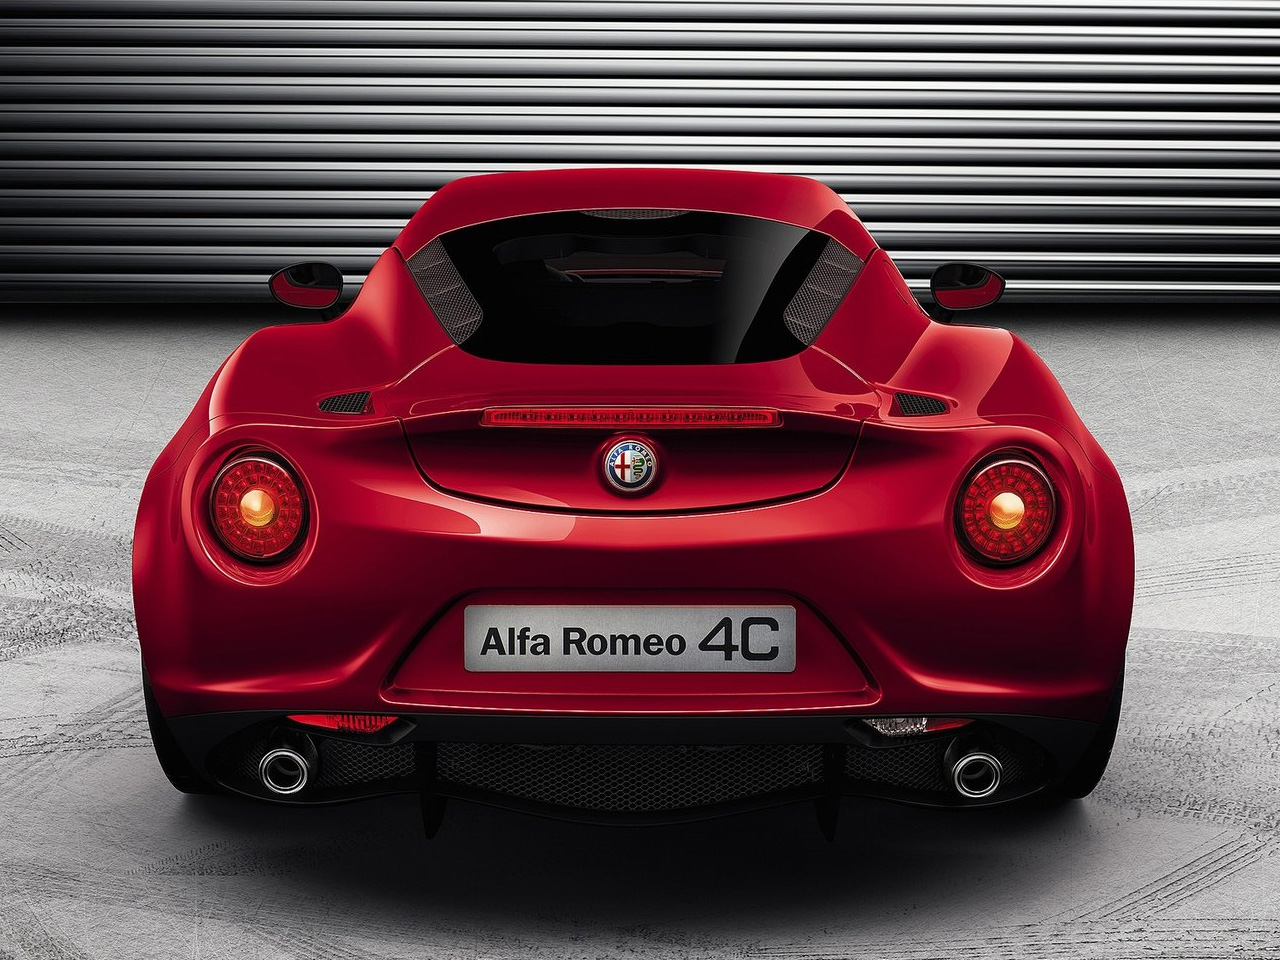 Alfa Romeo 4C Rear Picture Size High Resolution Image Wallpapers HD